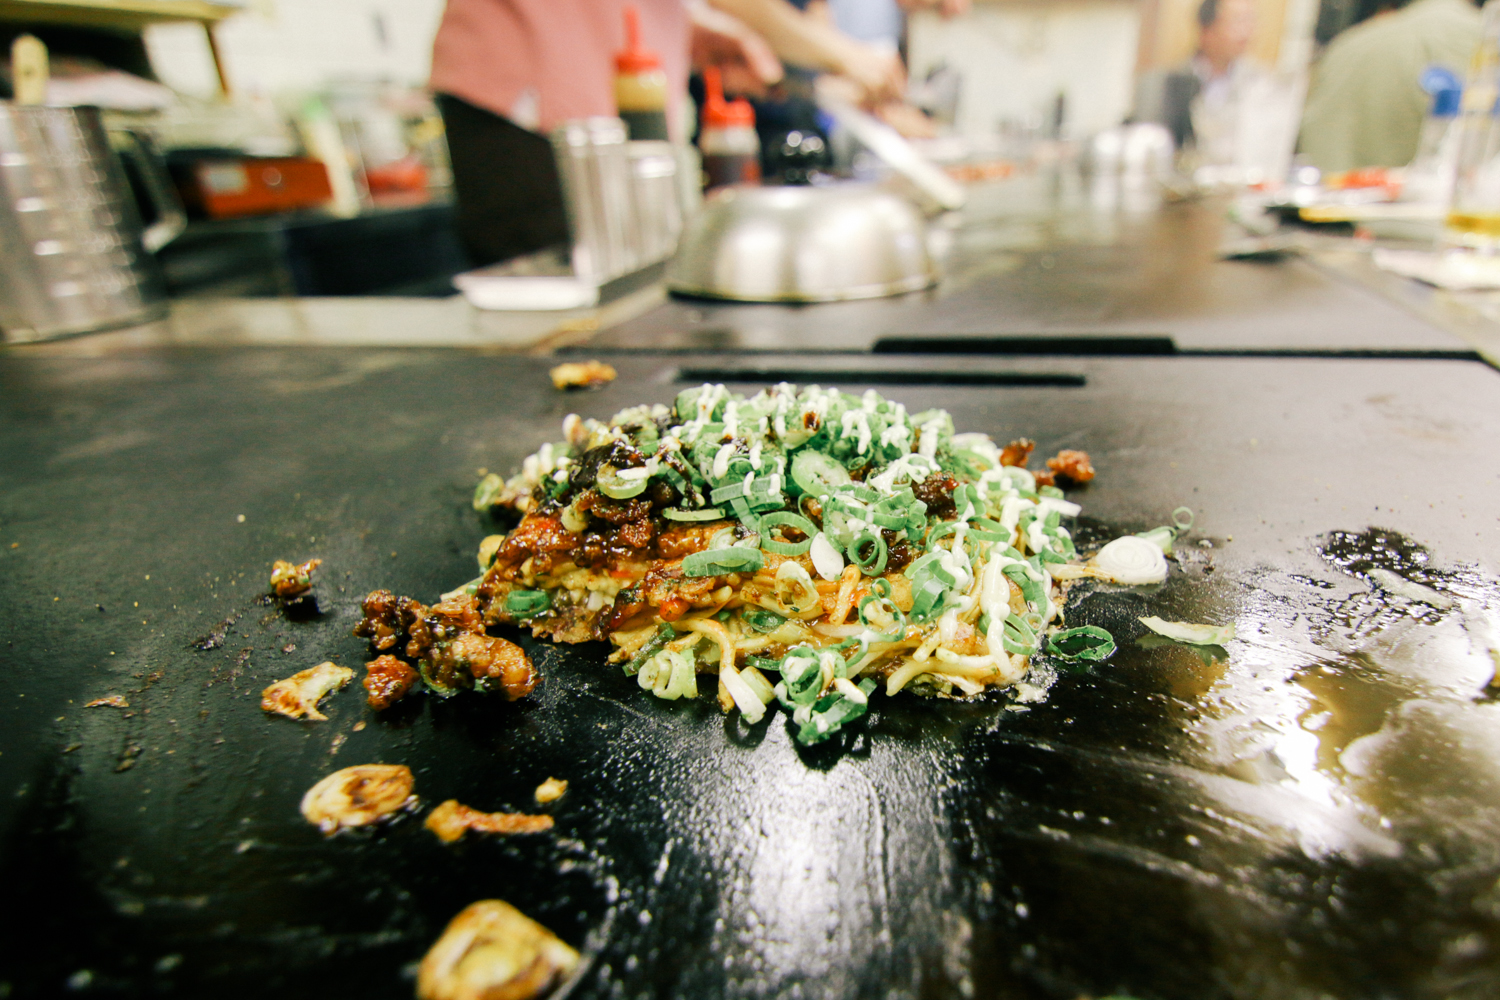 Okonomiyaki – the Japanese version of a pancake. Probably the weirdest meal I've ever had.